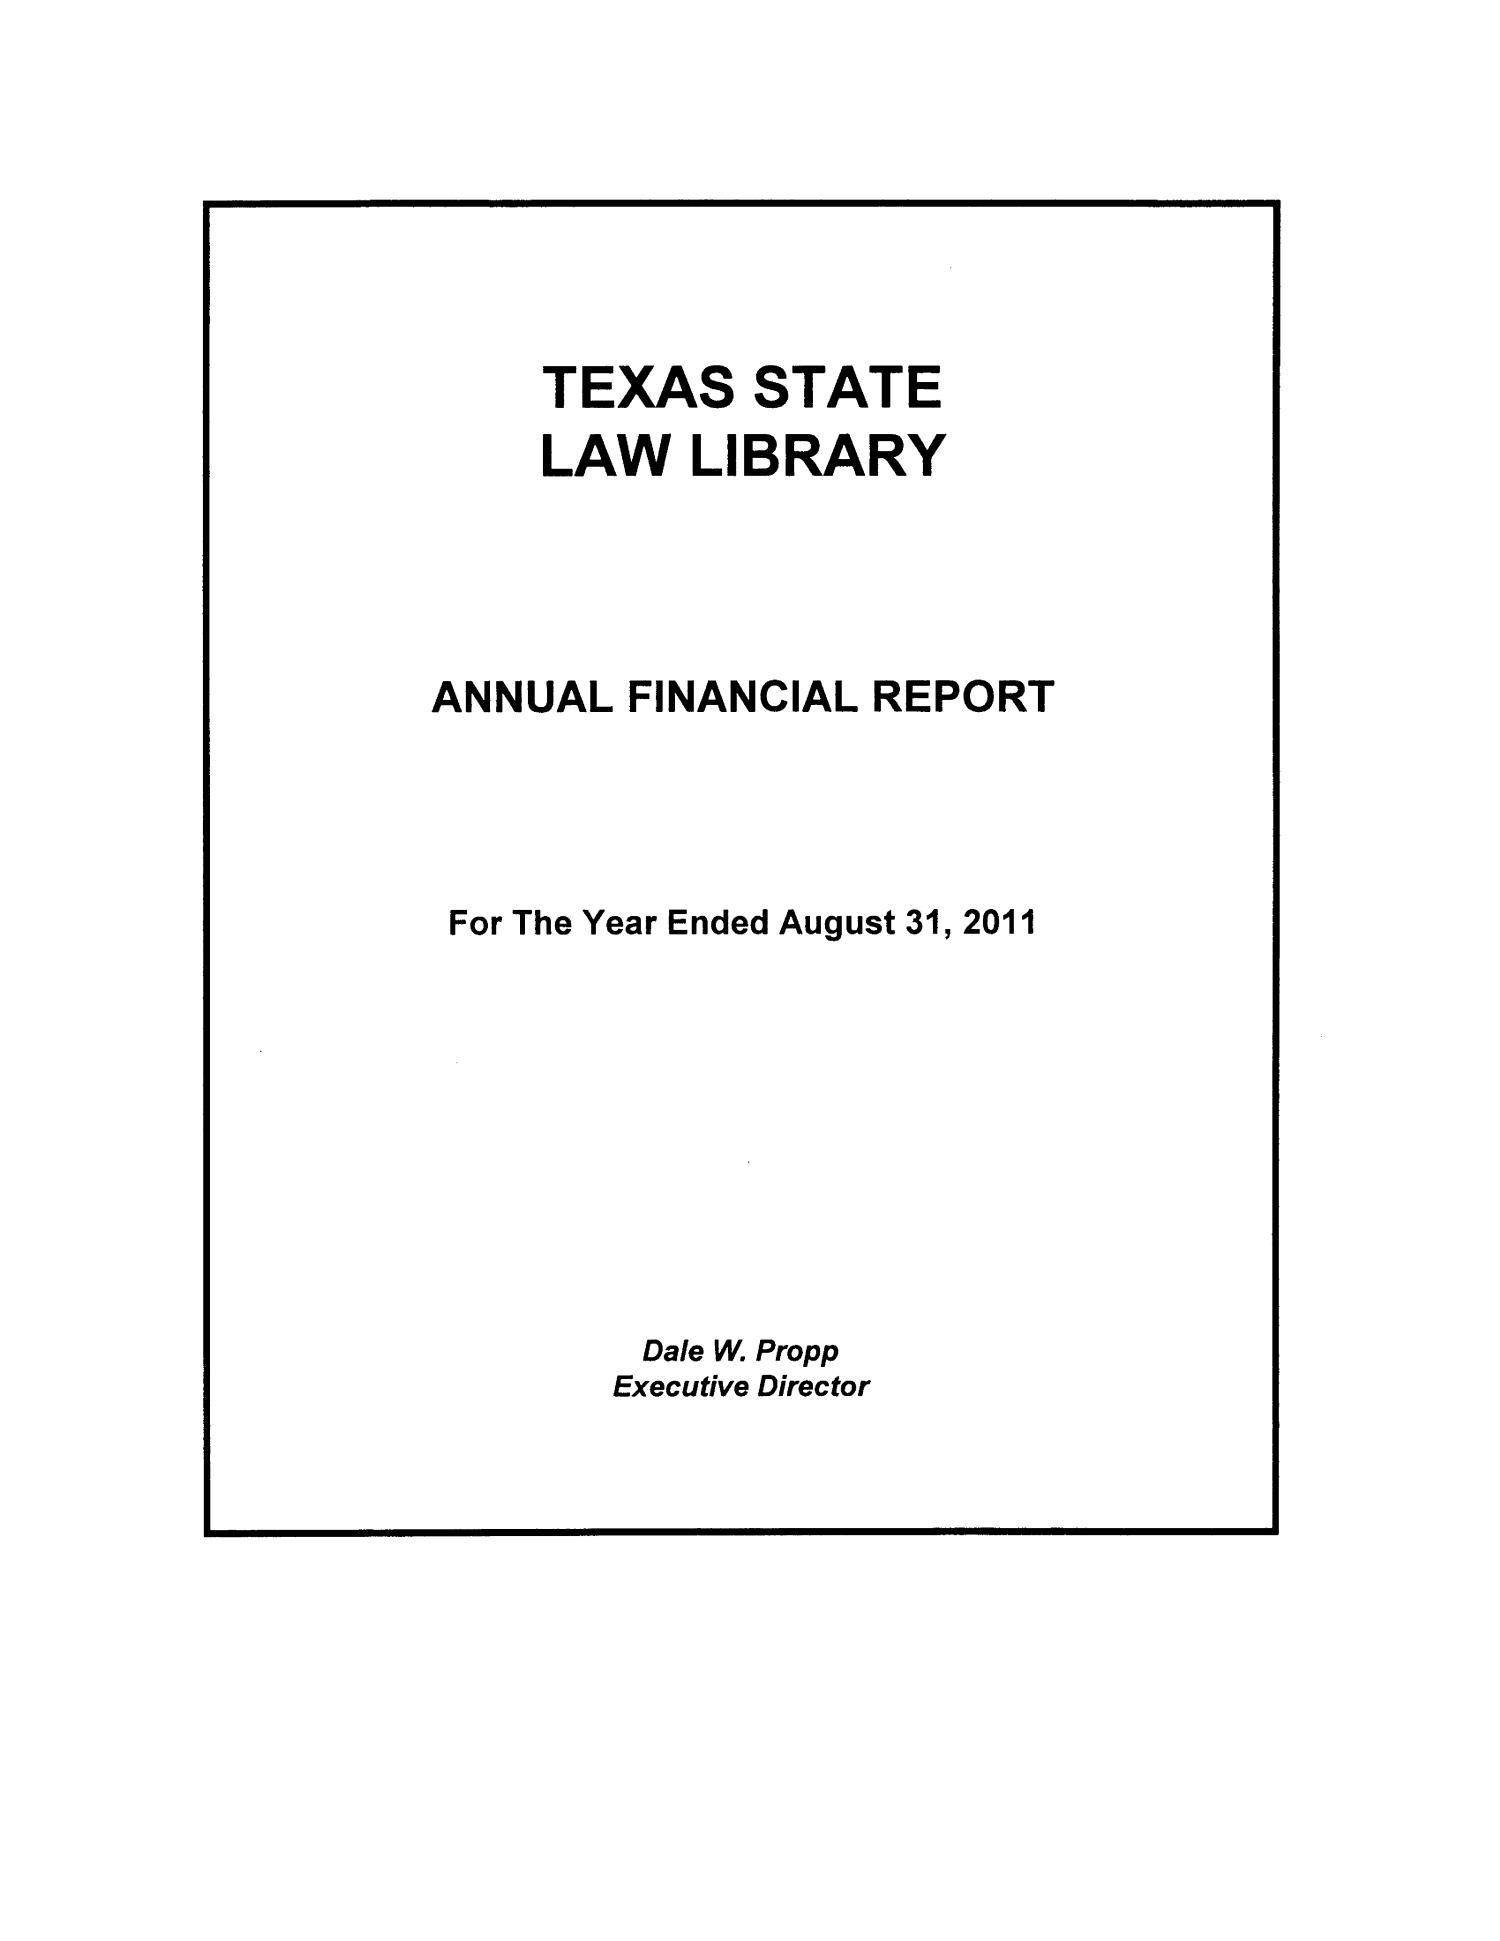 Texas State Law Library Annual Financial Report 2011